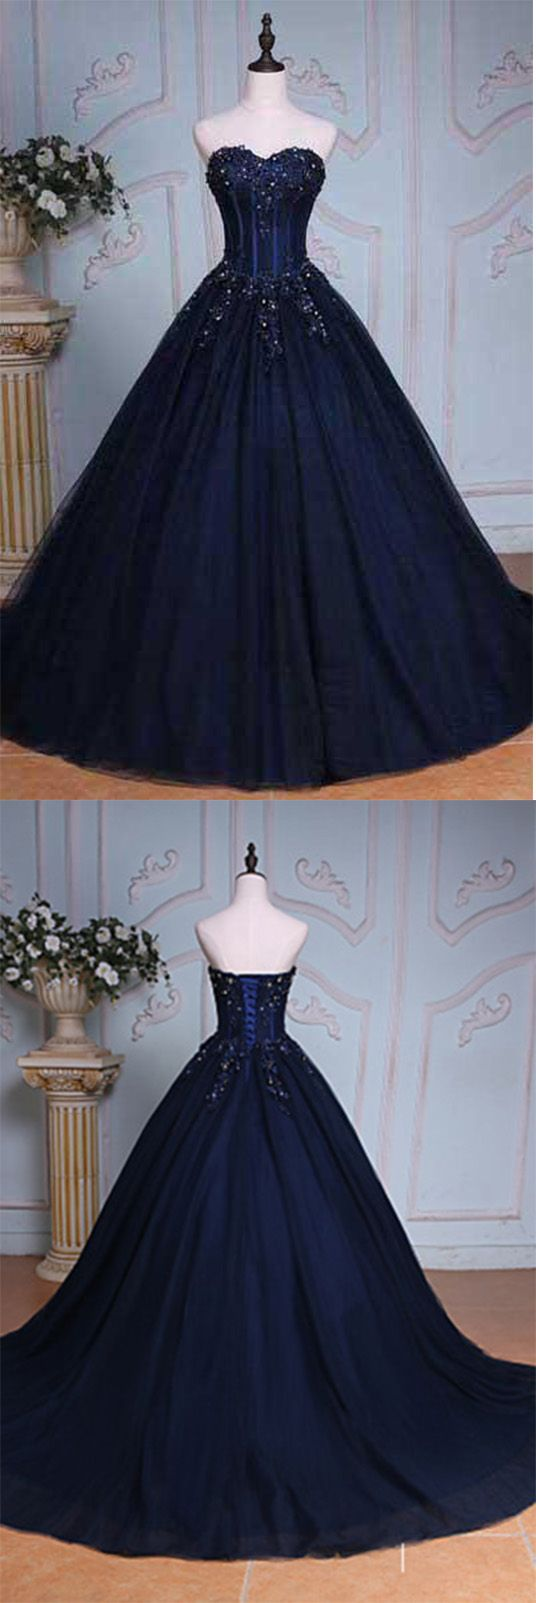 Navy Blue Evening Gown with beading and train.